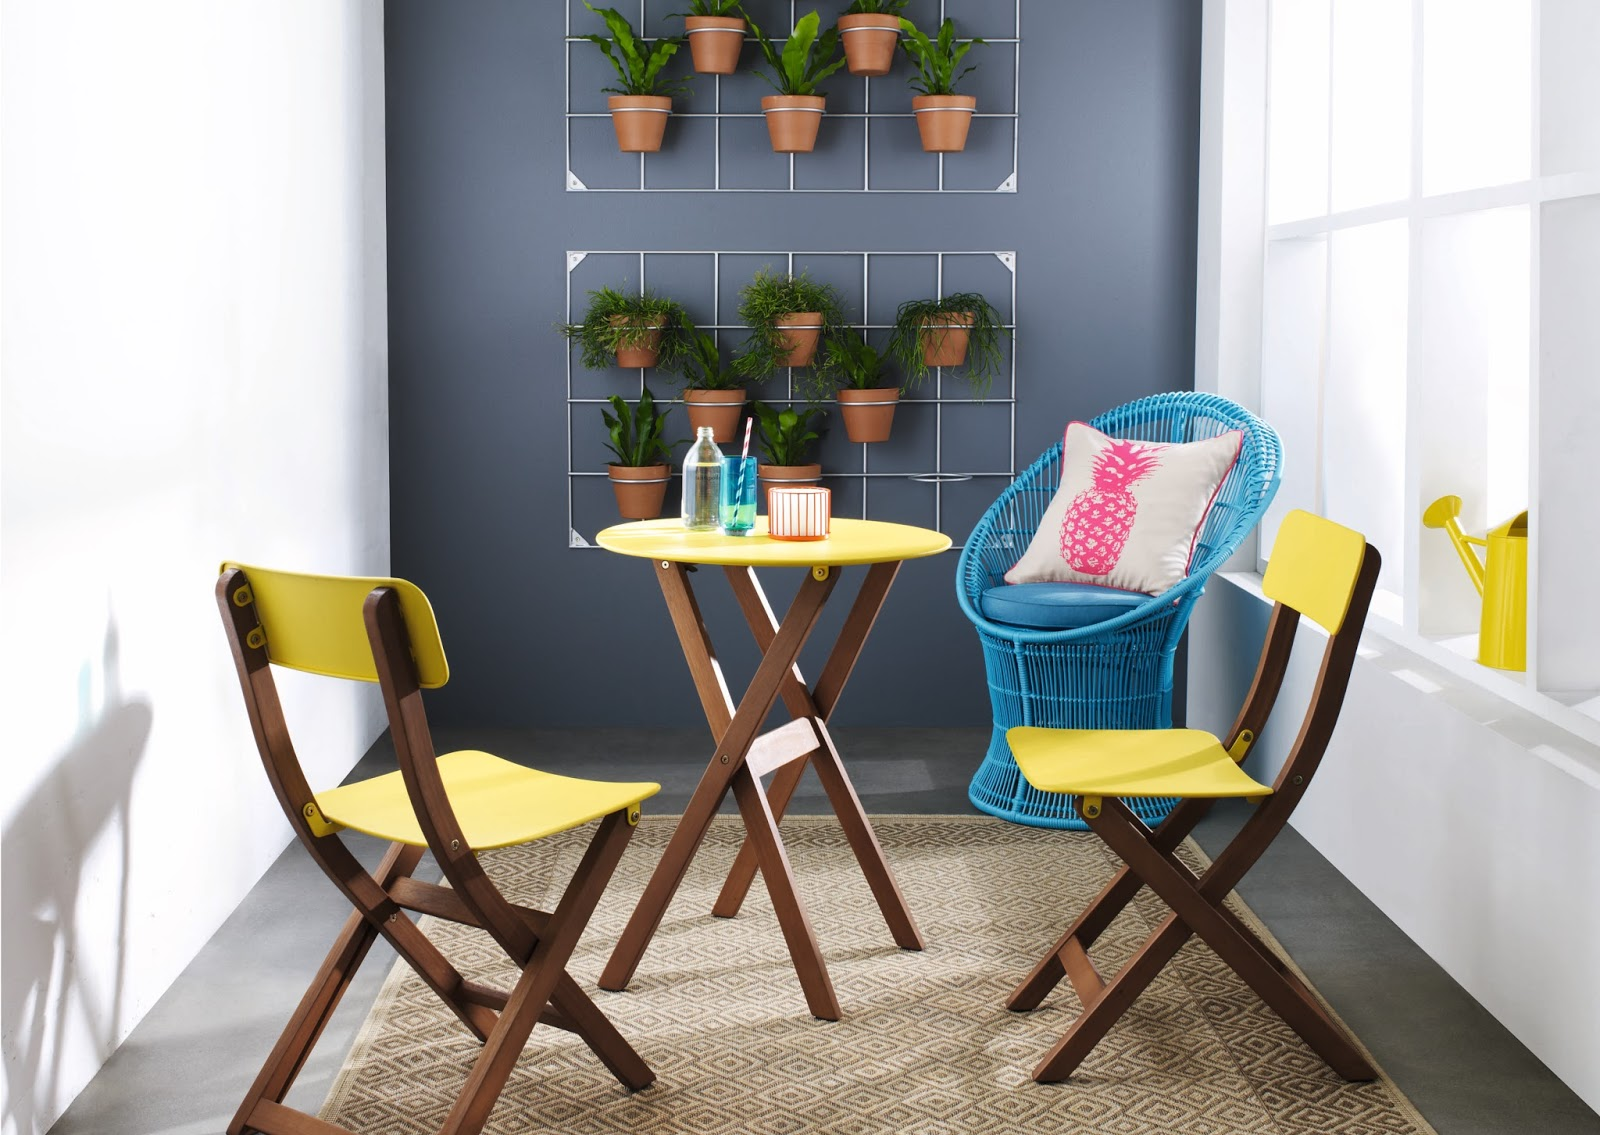 Sunroom colour up freedom outdoor furniture